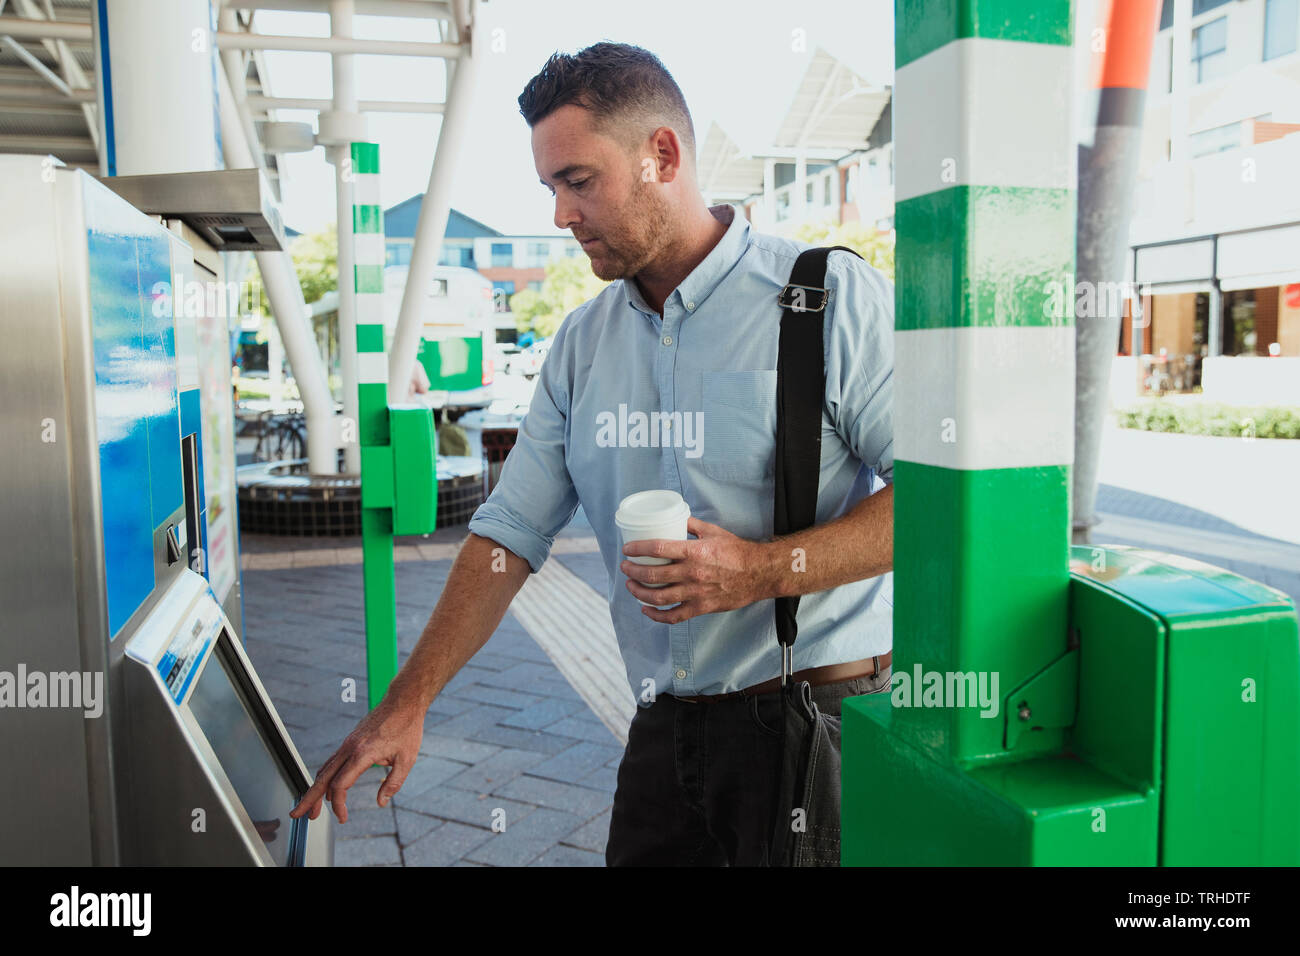 A side-view shot of a mid-adult businessman buying a train ticket to begin his commute to work, he is holding a cup of coffee. - Stock Image